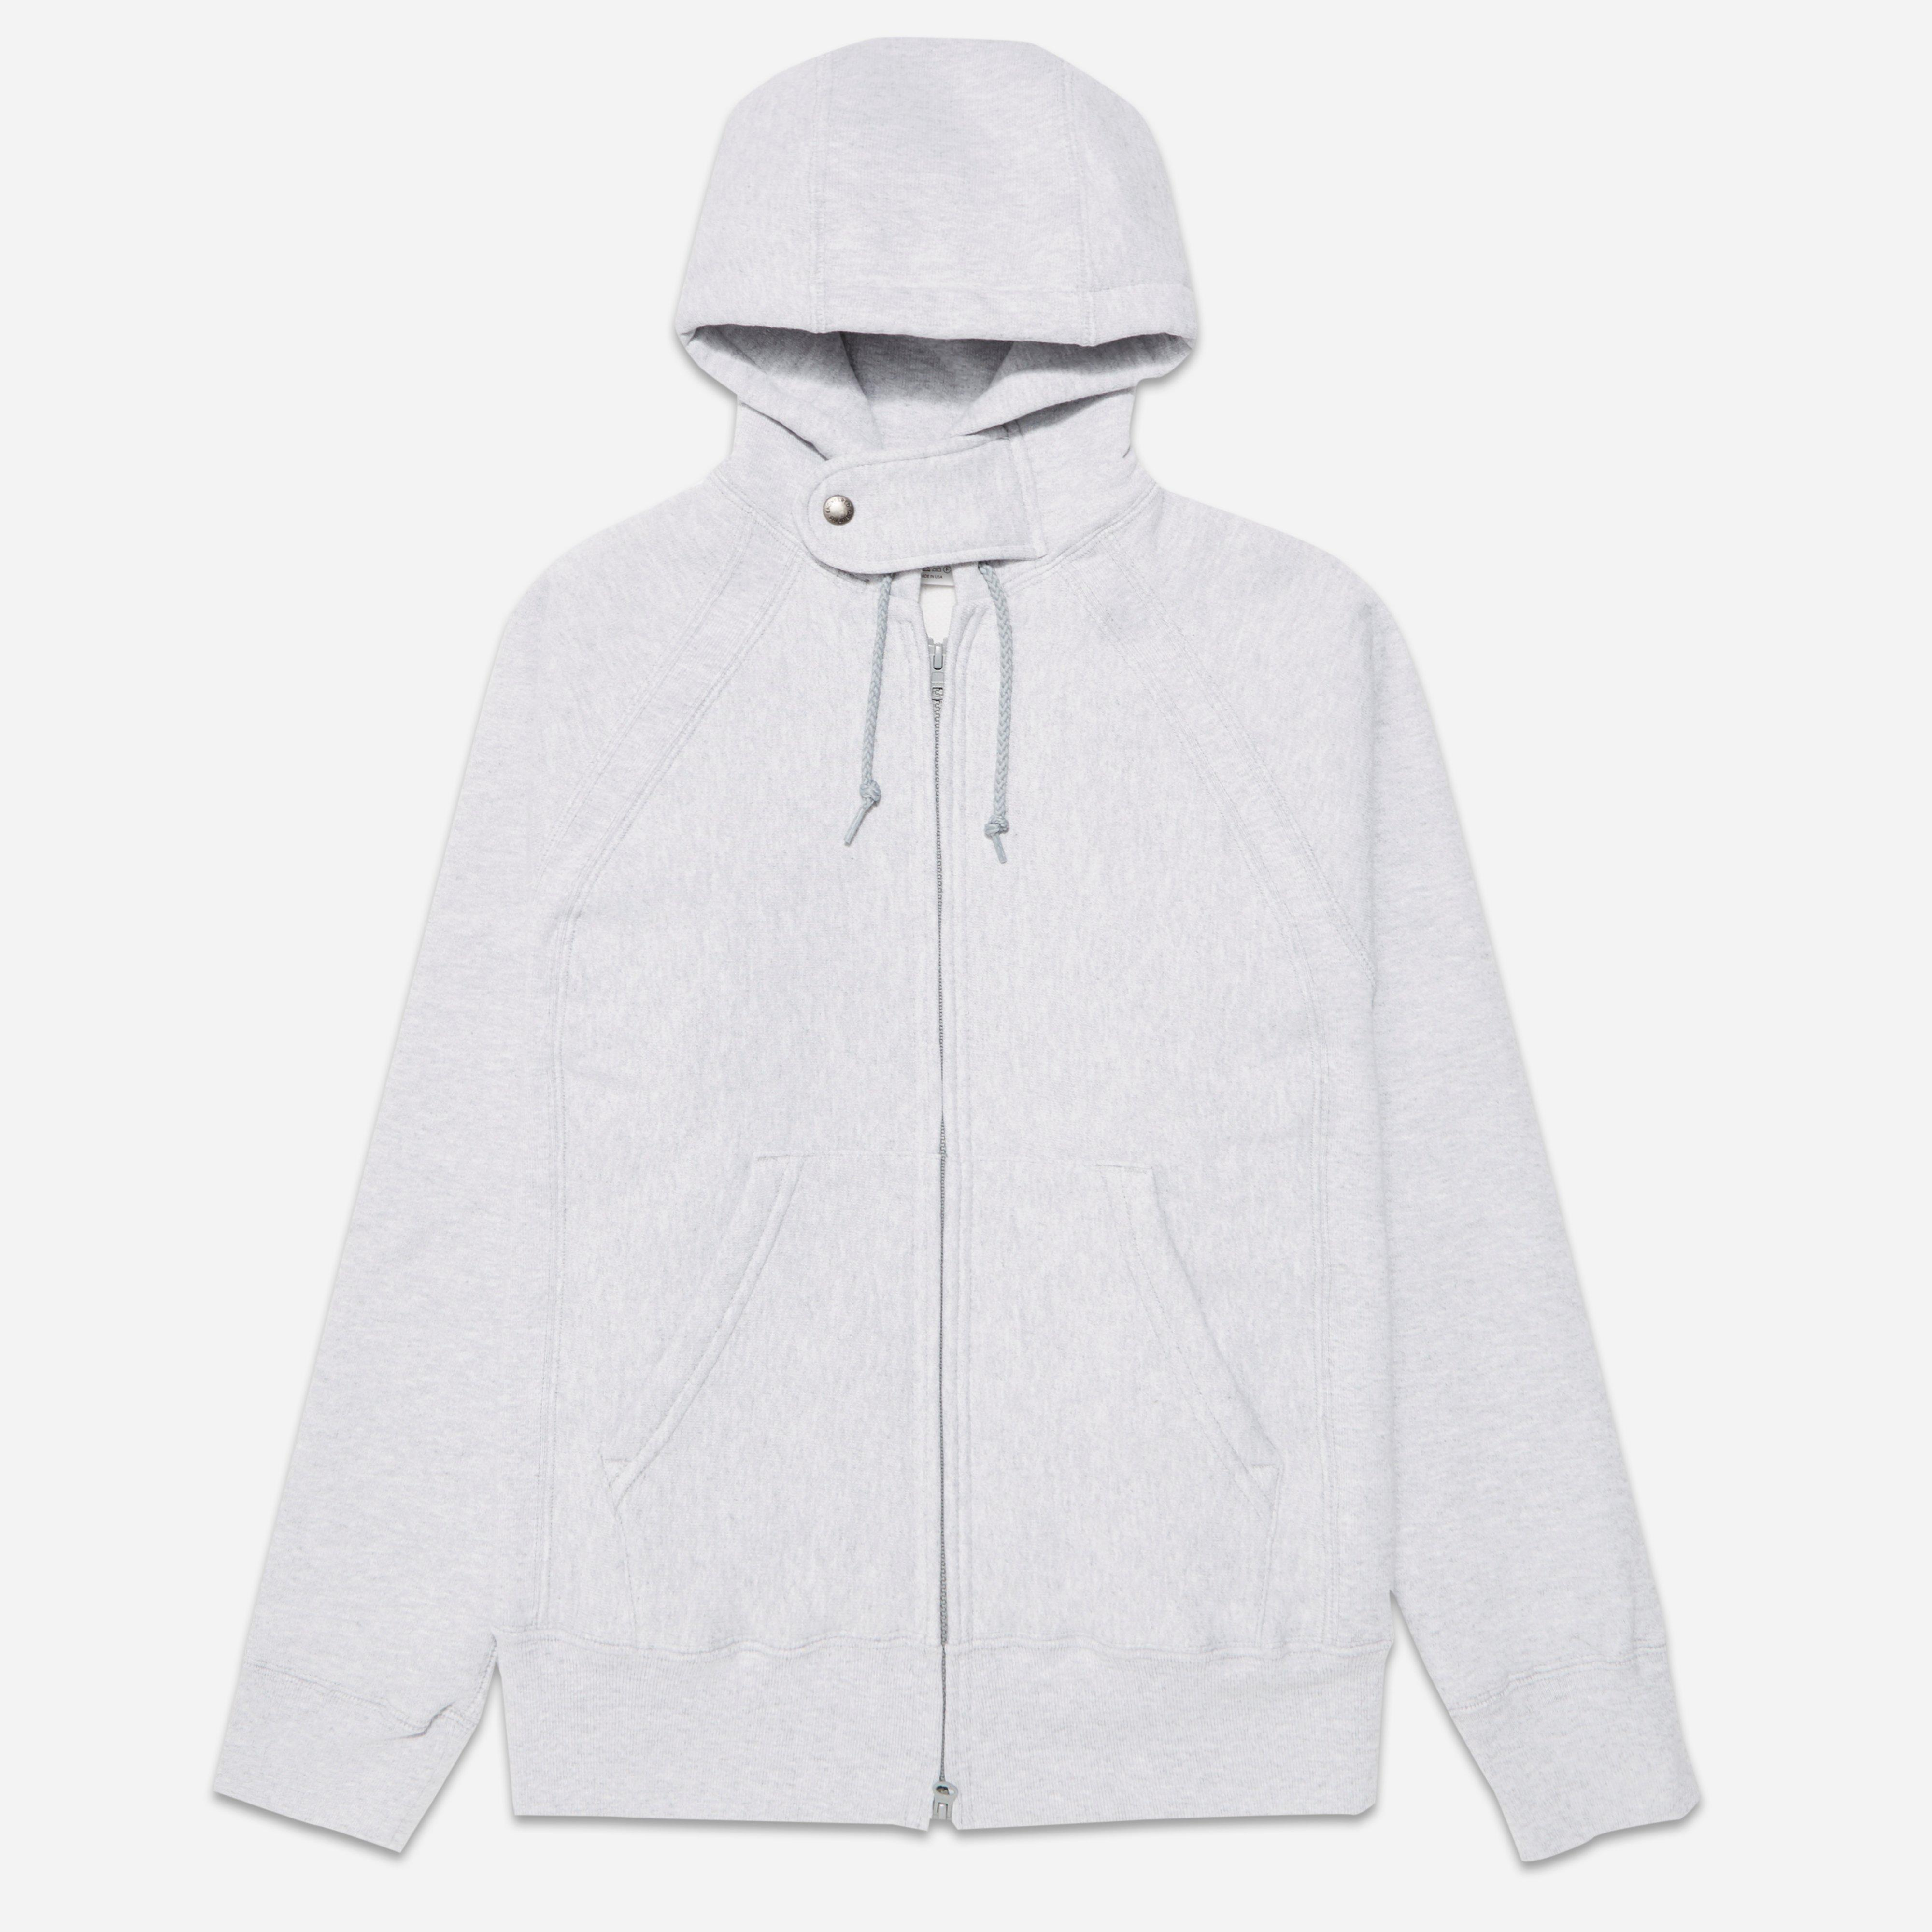 Engineered Garments Workaday Fleece Raglan Zip Hoodie